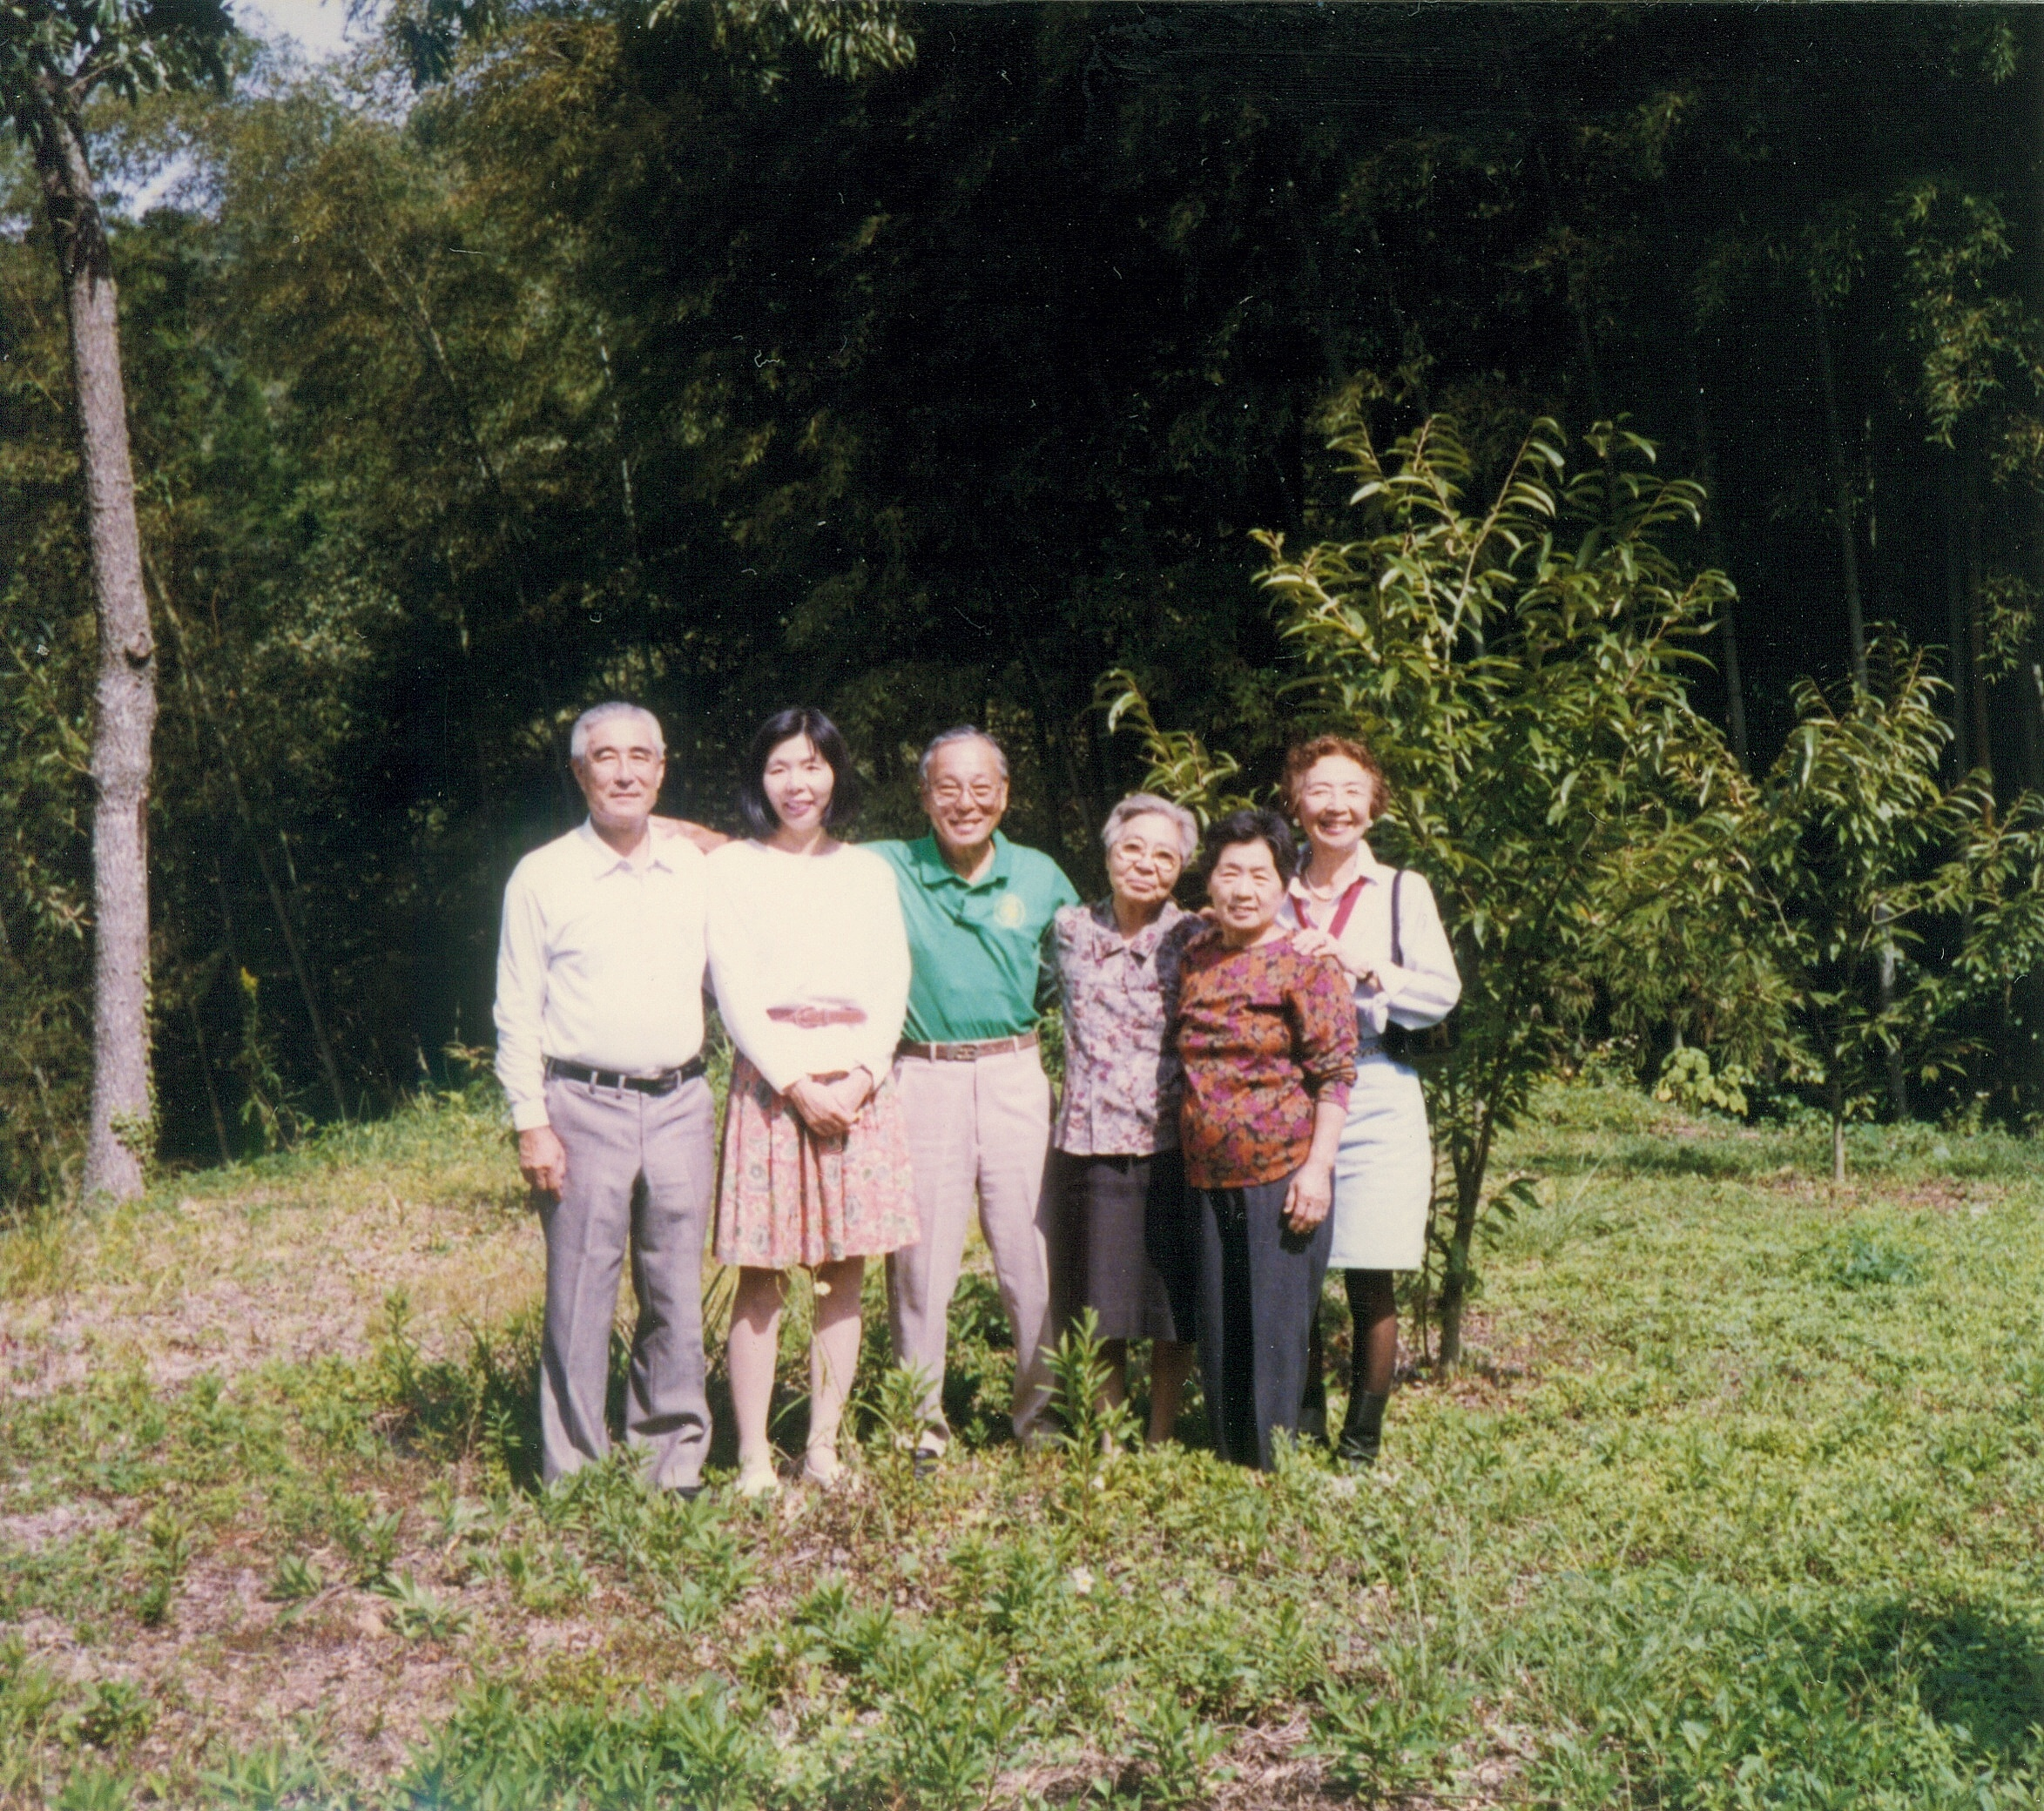 Group photo (from left): of Aketo Honda, Kazuko Sakai, Sadao Honda, Shizuko Sakai, Kozue Honda and Jean Honda at the Honda family estate.